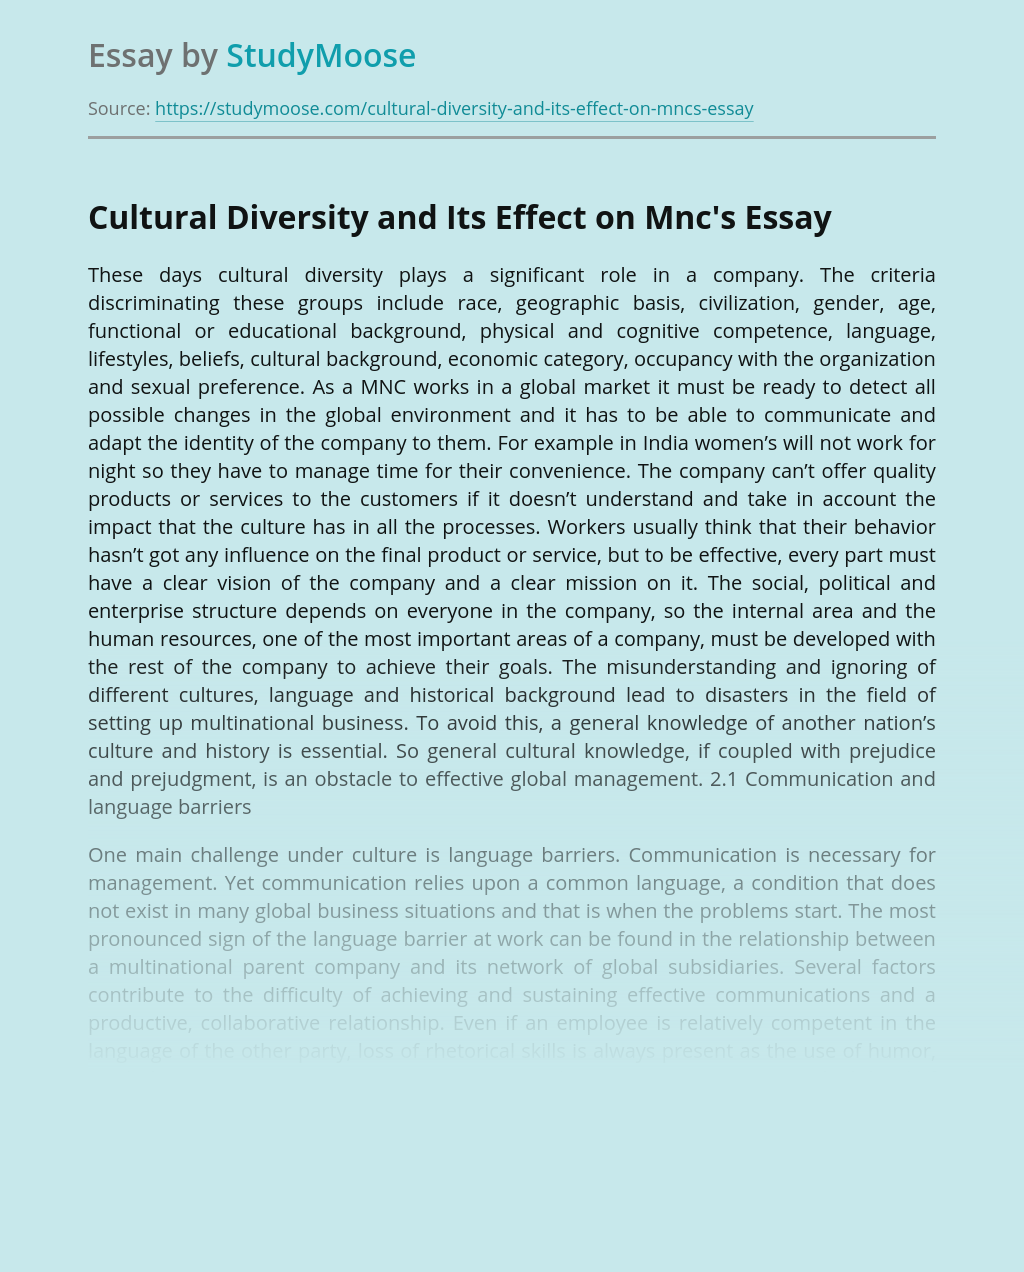 Cultural Diversity and Its Effect on Mnc's